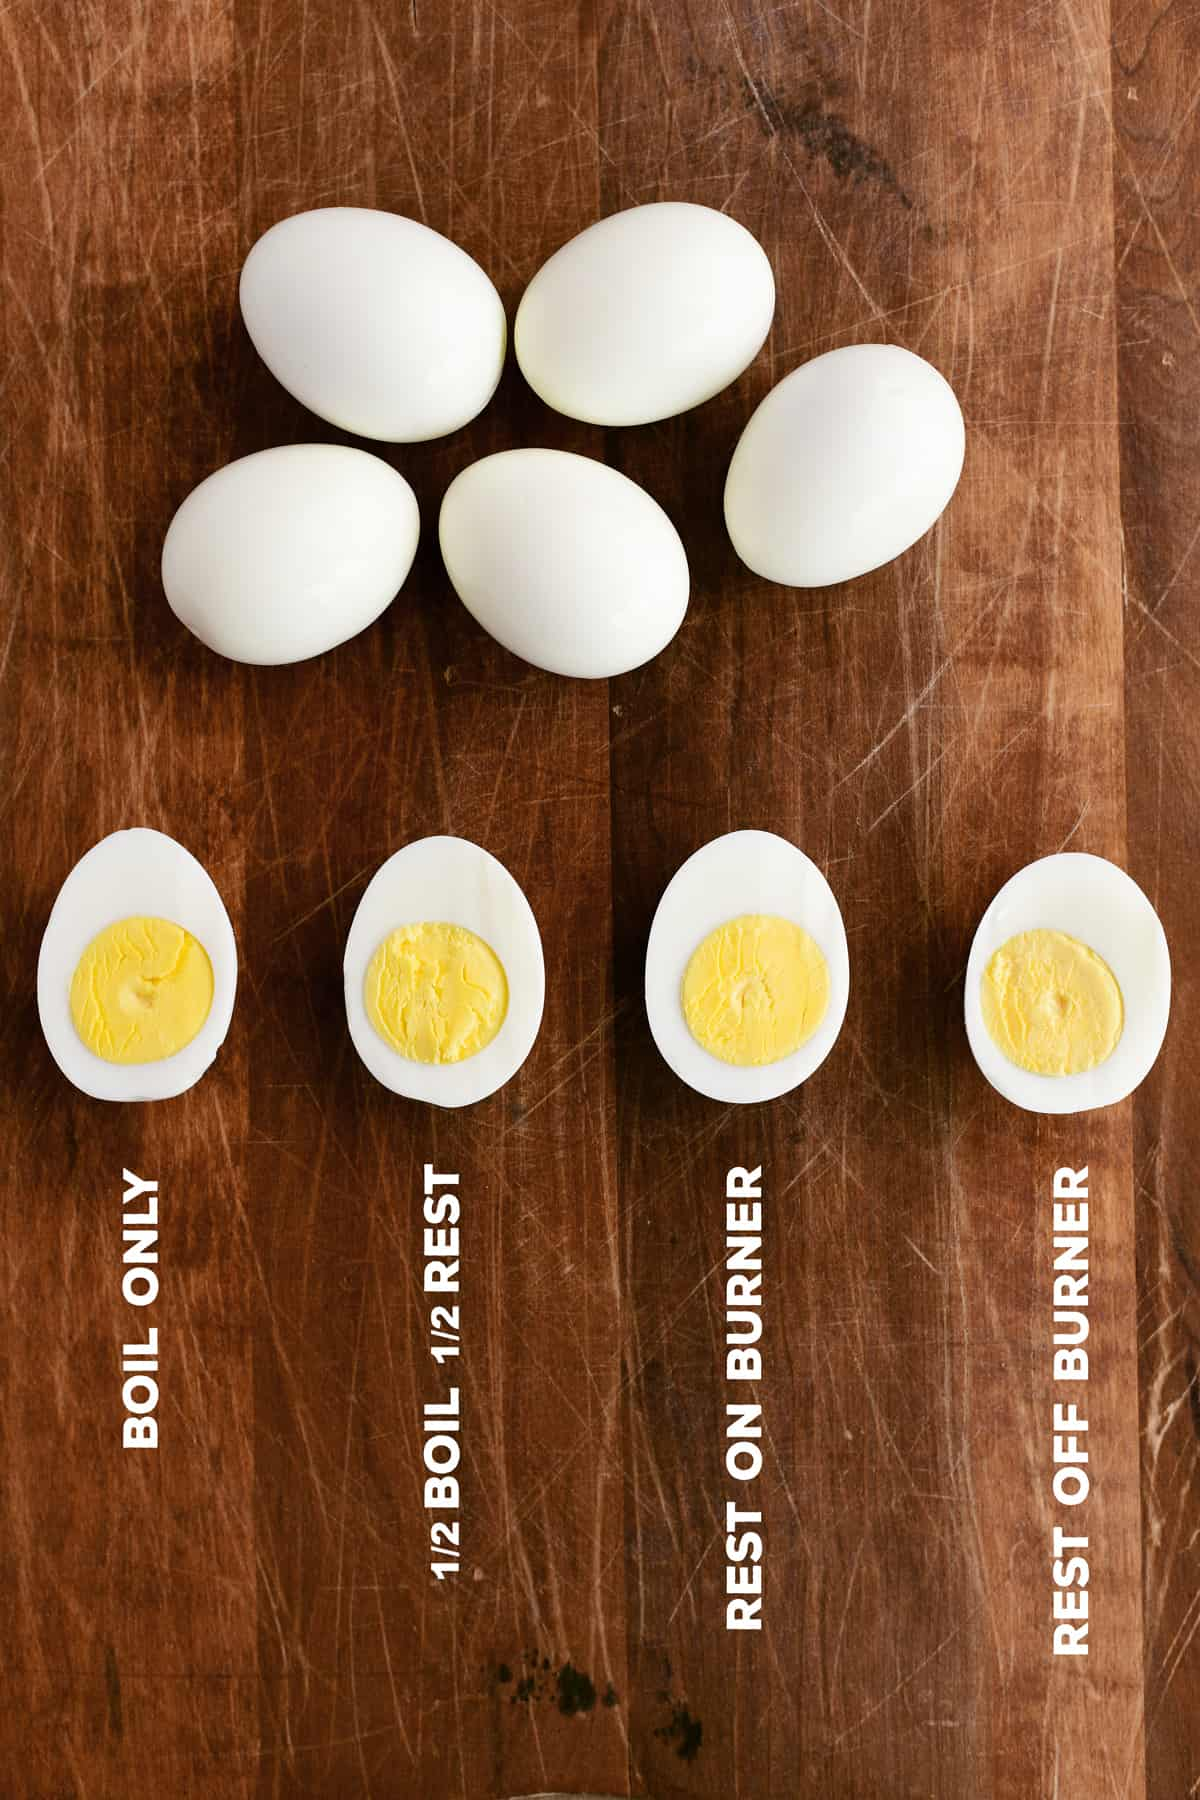 eggs and halves on wood board with writing